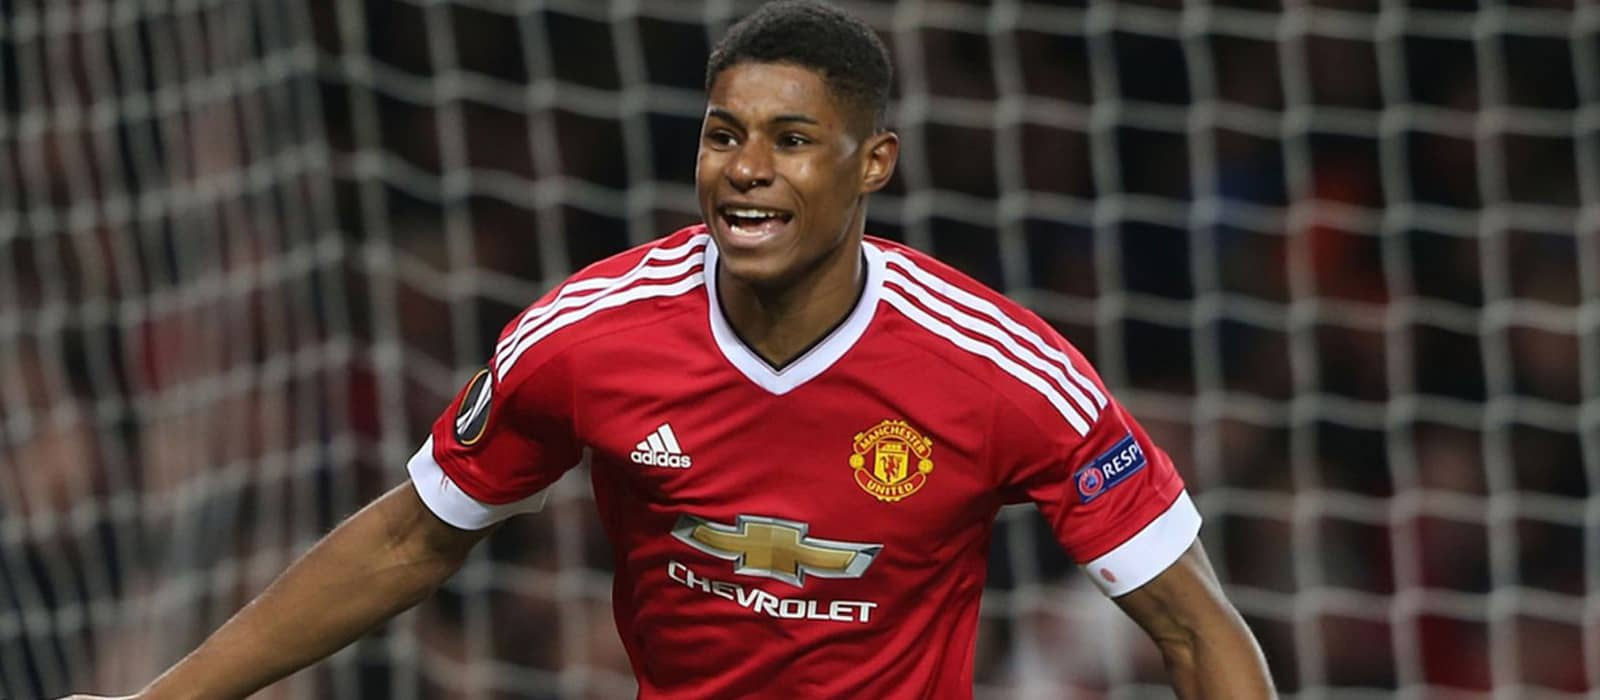 Marcus Rashford revealed as new Manchester United no. 10